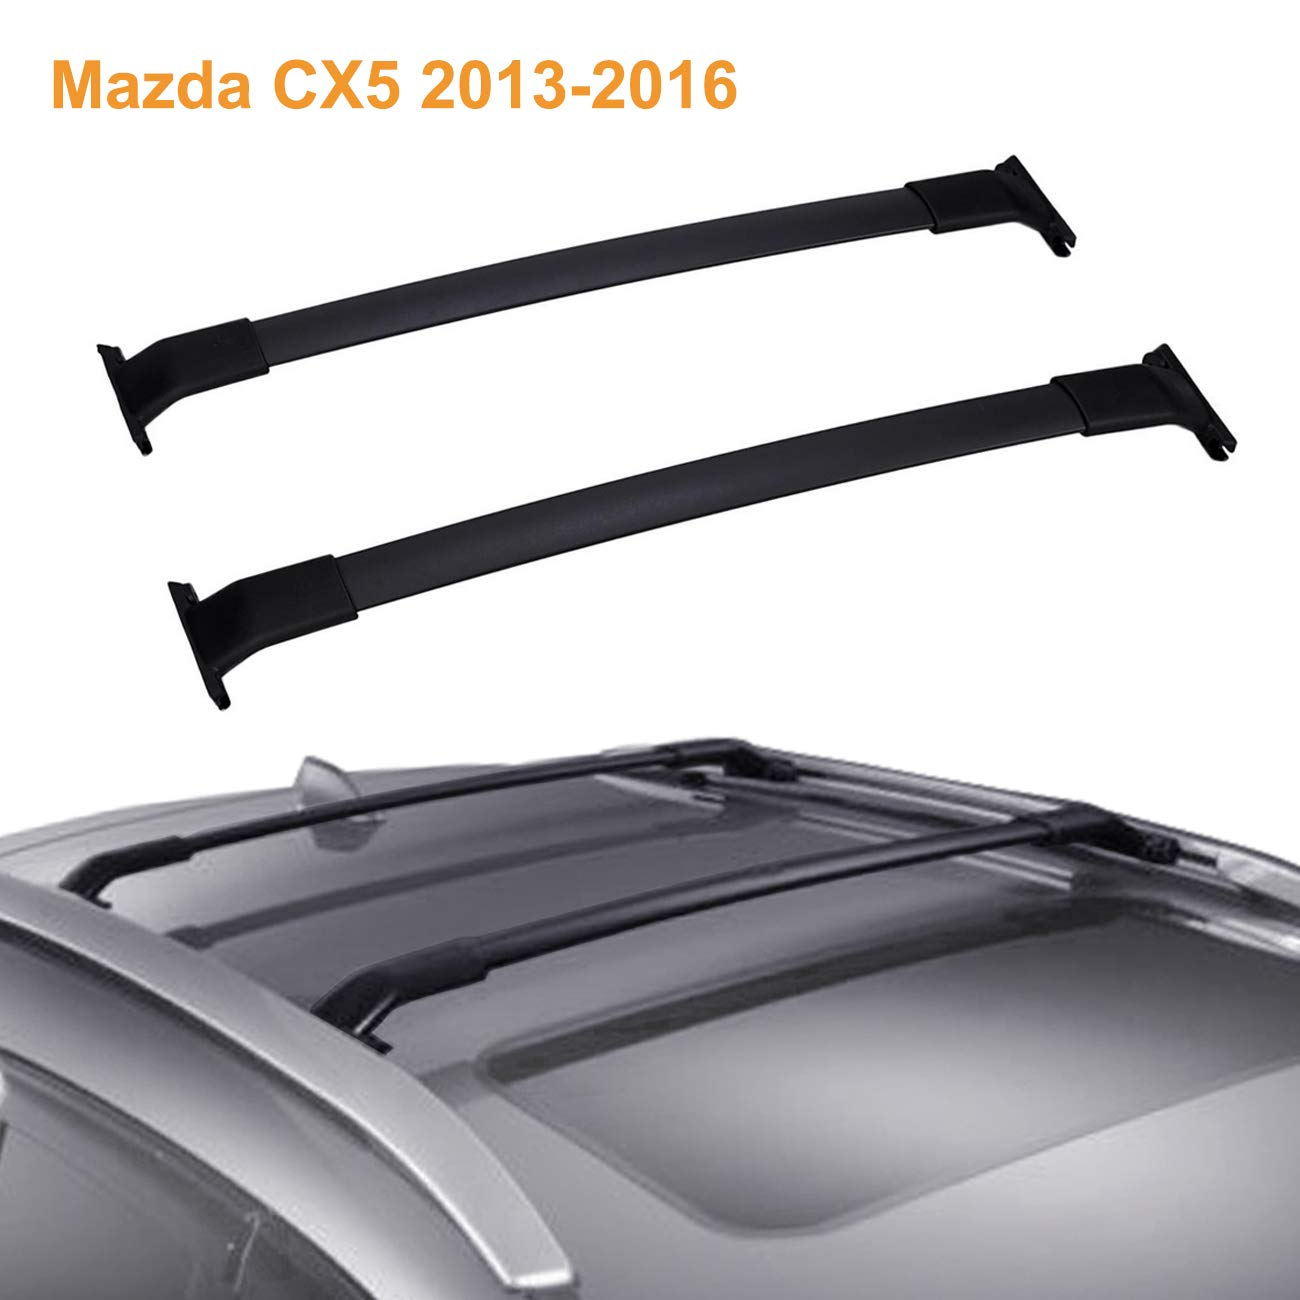 12-ON 3 BICYCLE REAR MOUNT CARRIER CAR RACK for MAZDA CX-5 CX5